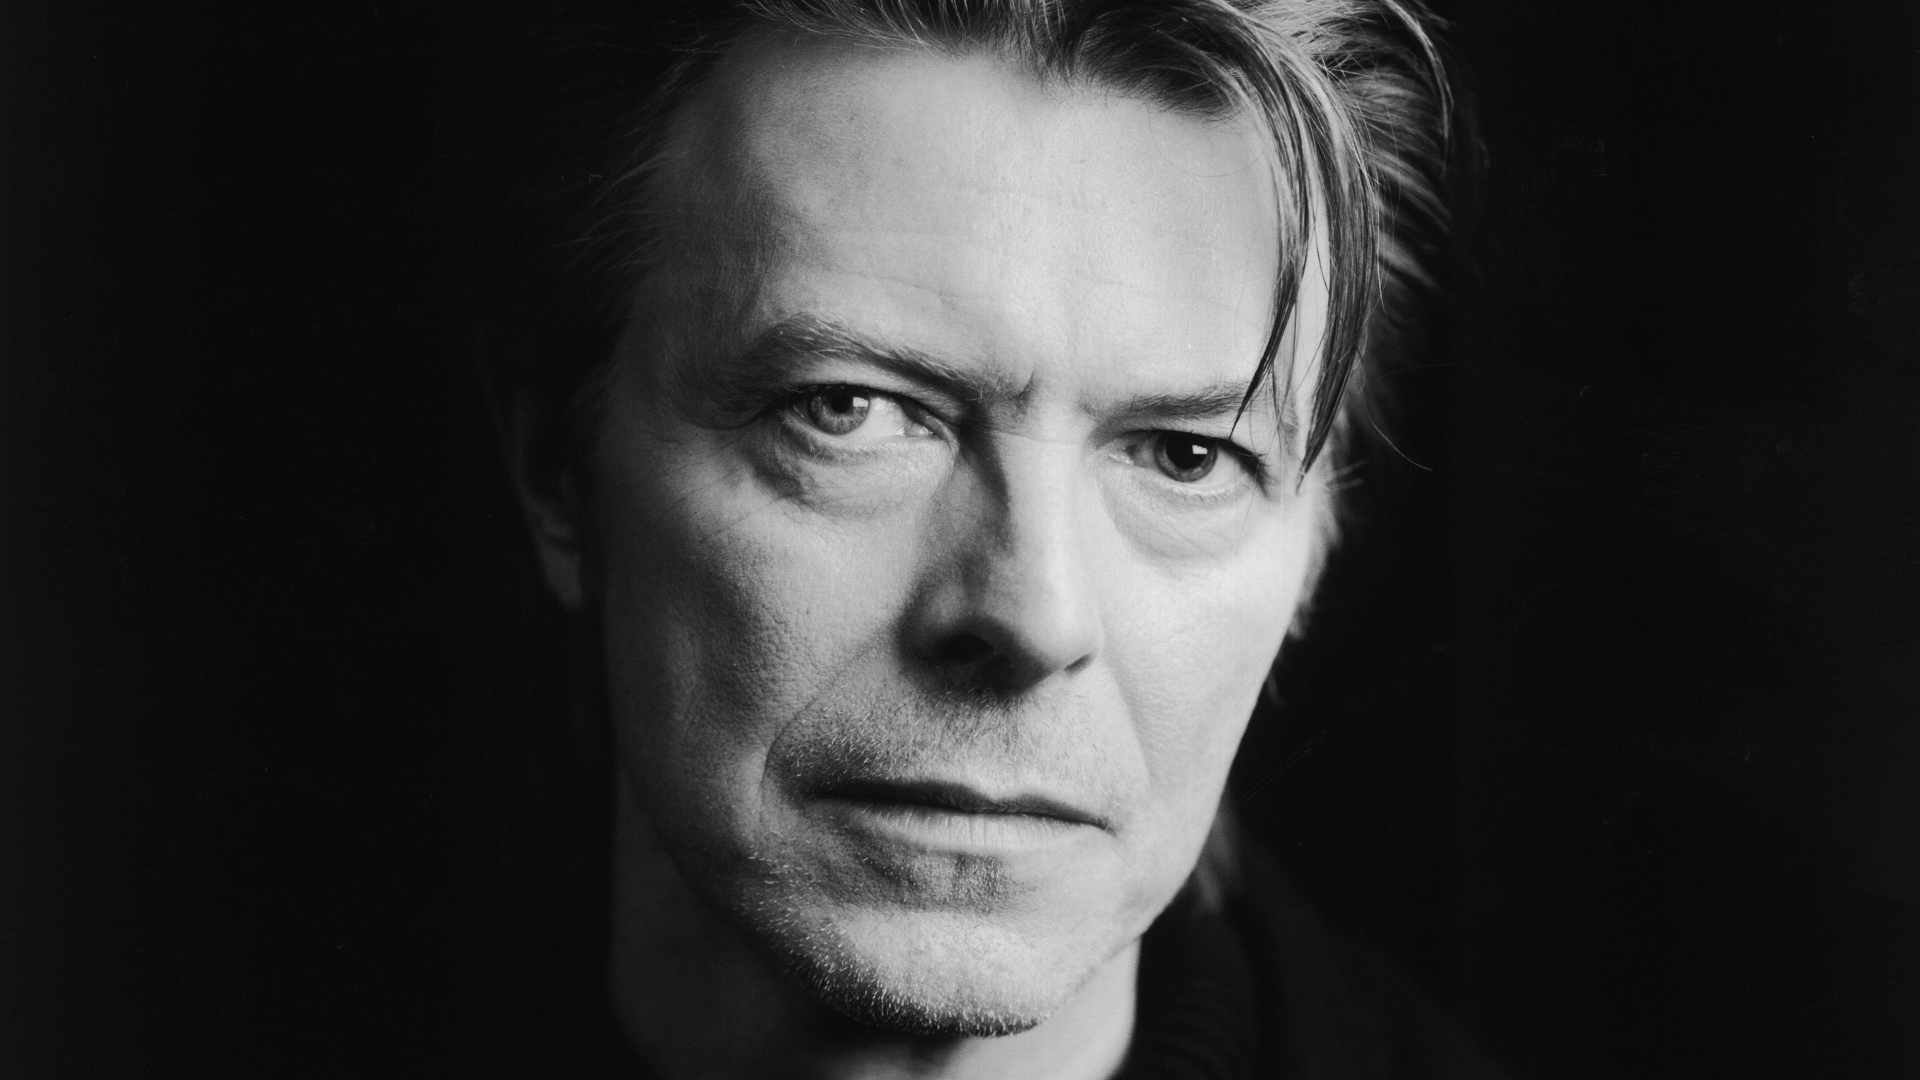 david-bowie-album-blackstar